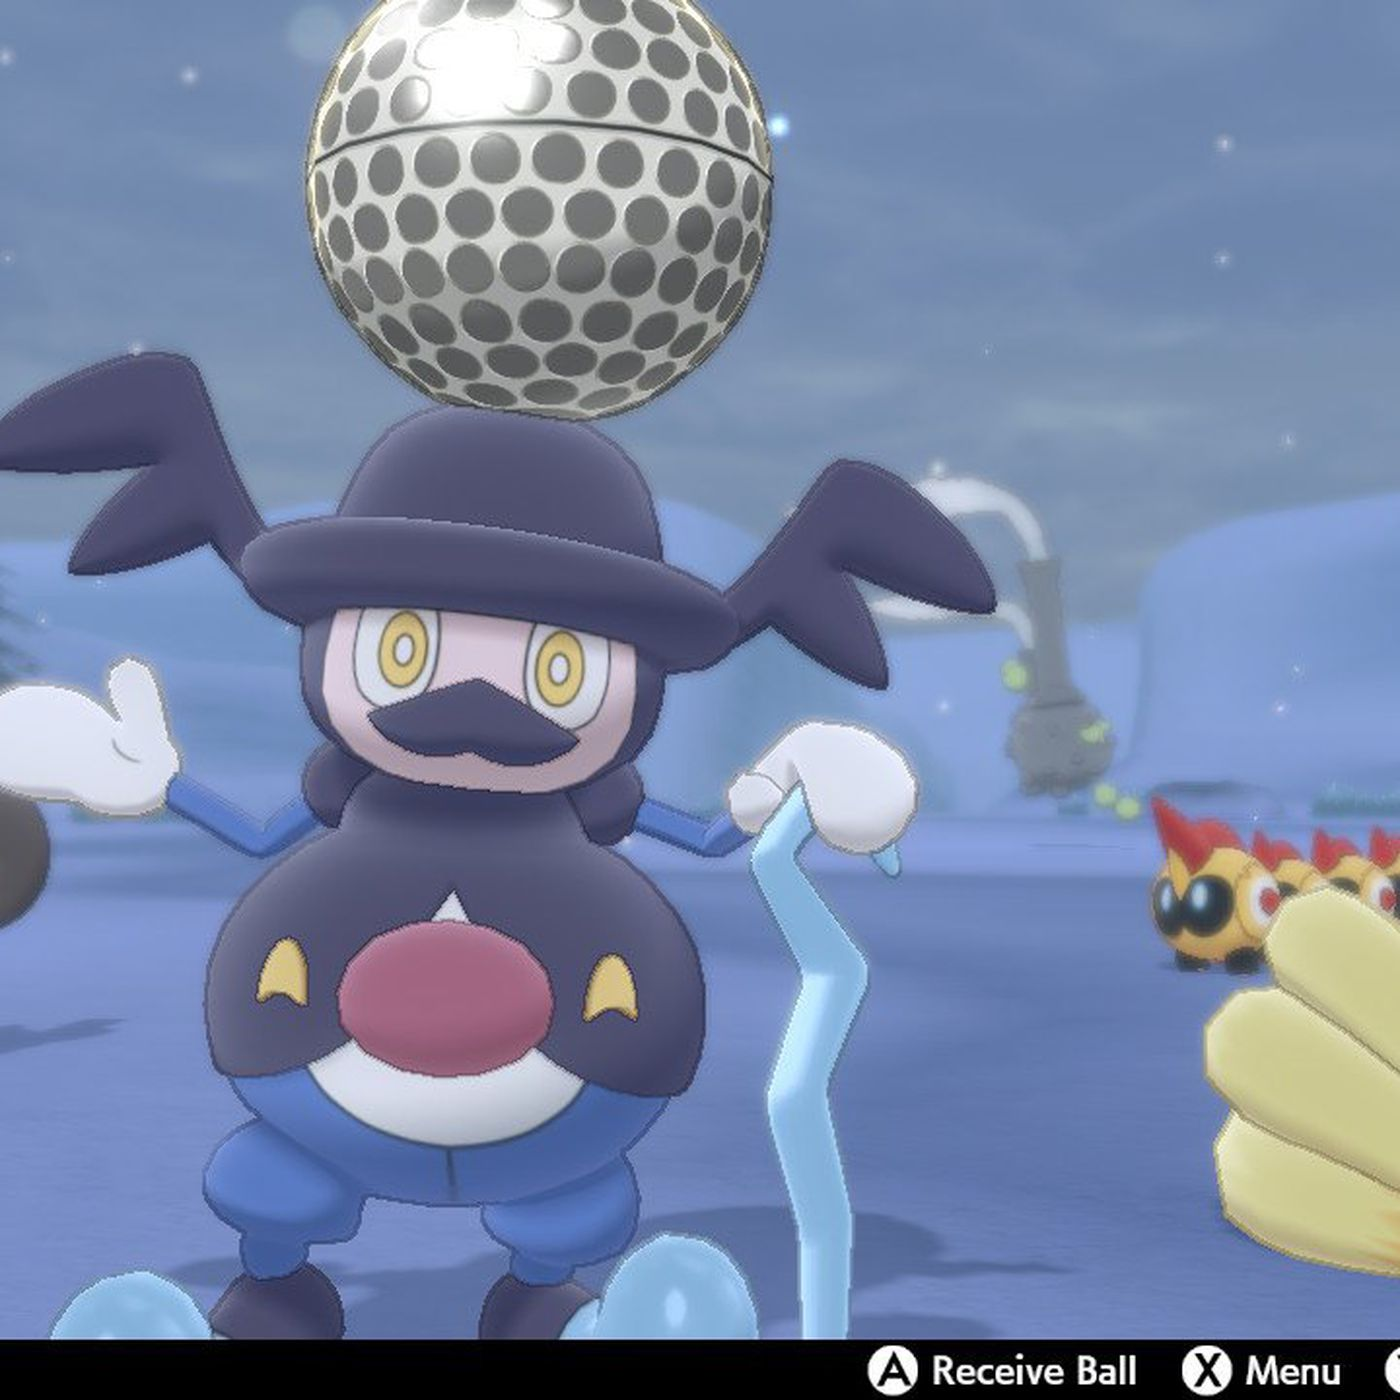 How To Get More Camp Toys In Pokemon Sword And Shield Polygon Max cp, max hp, type, attack, defense, stamina, buddy stats for tympole in pokémon go. camp toys in pokemon sword and shield